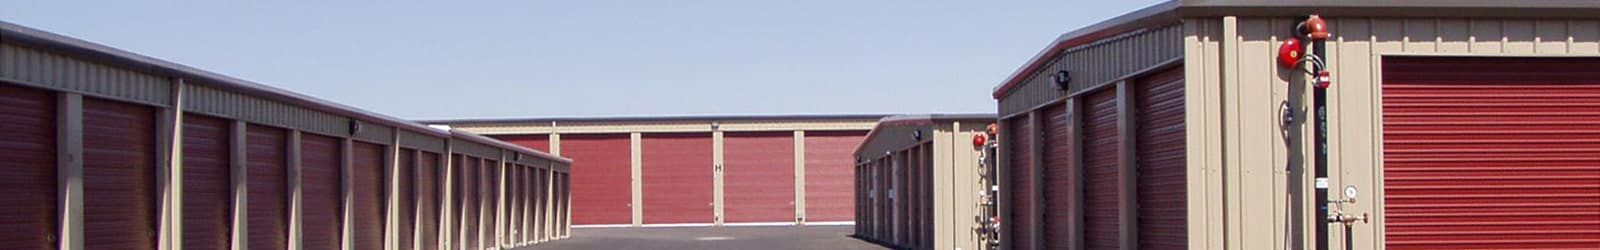 Read the FAQs for Gila Ridge Storage